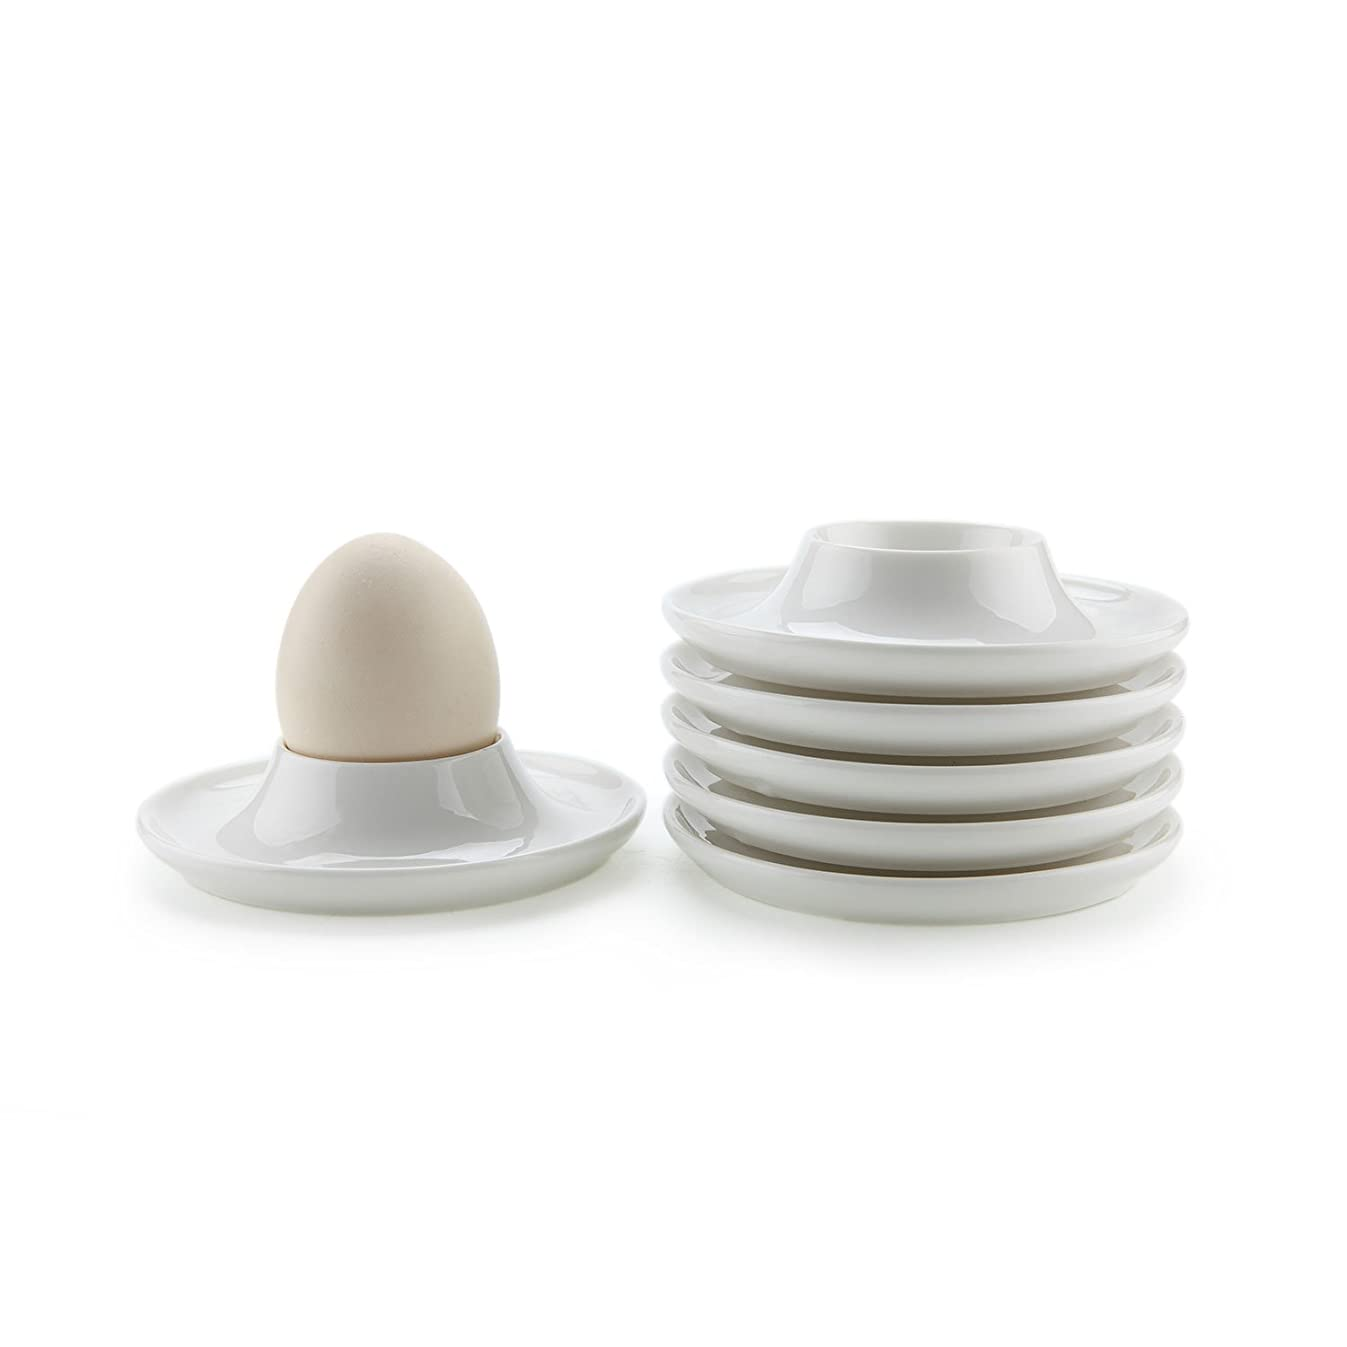 ComSaf Porcelain Egg Cups Plates with Base, Soft Boiled Egg Cup Holders White, Pack of 6